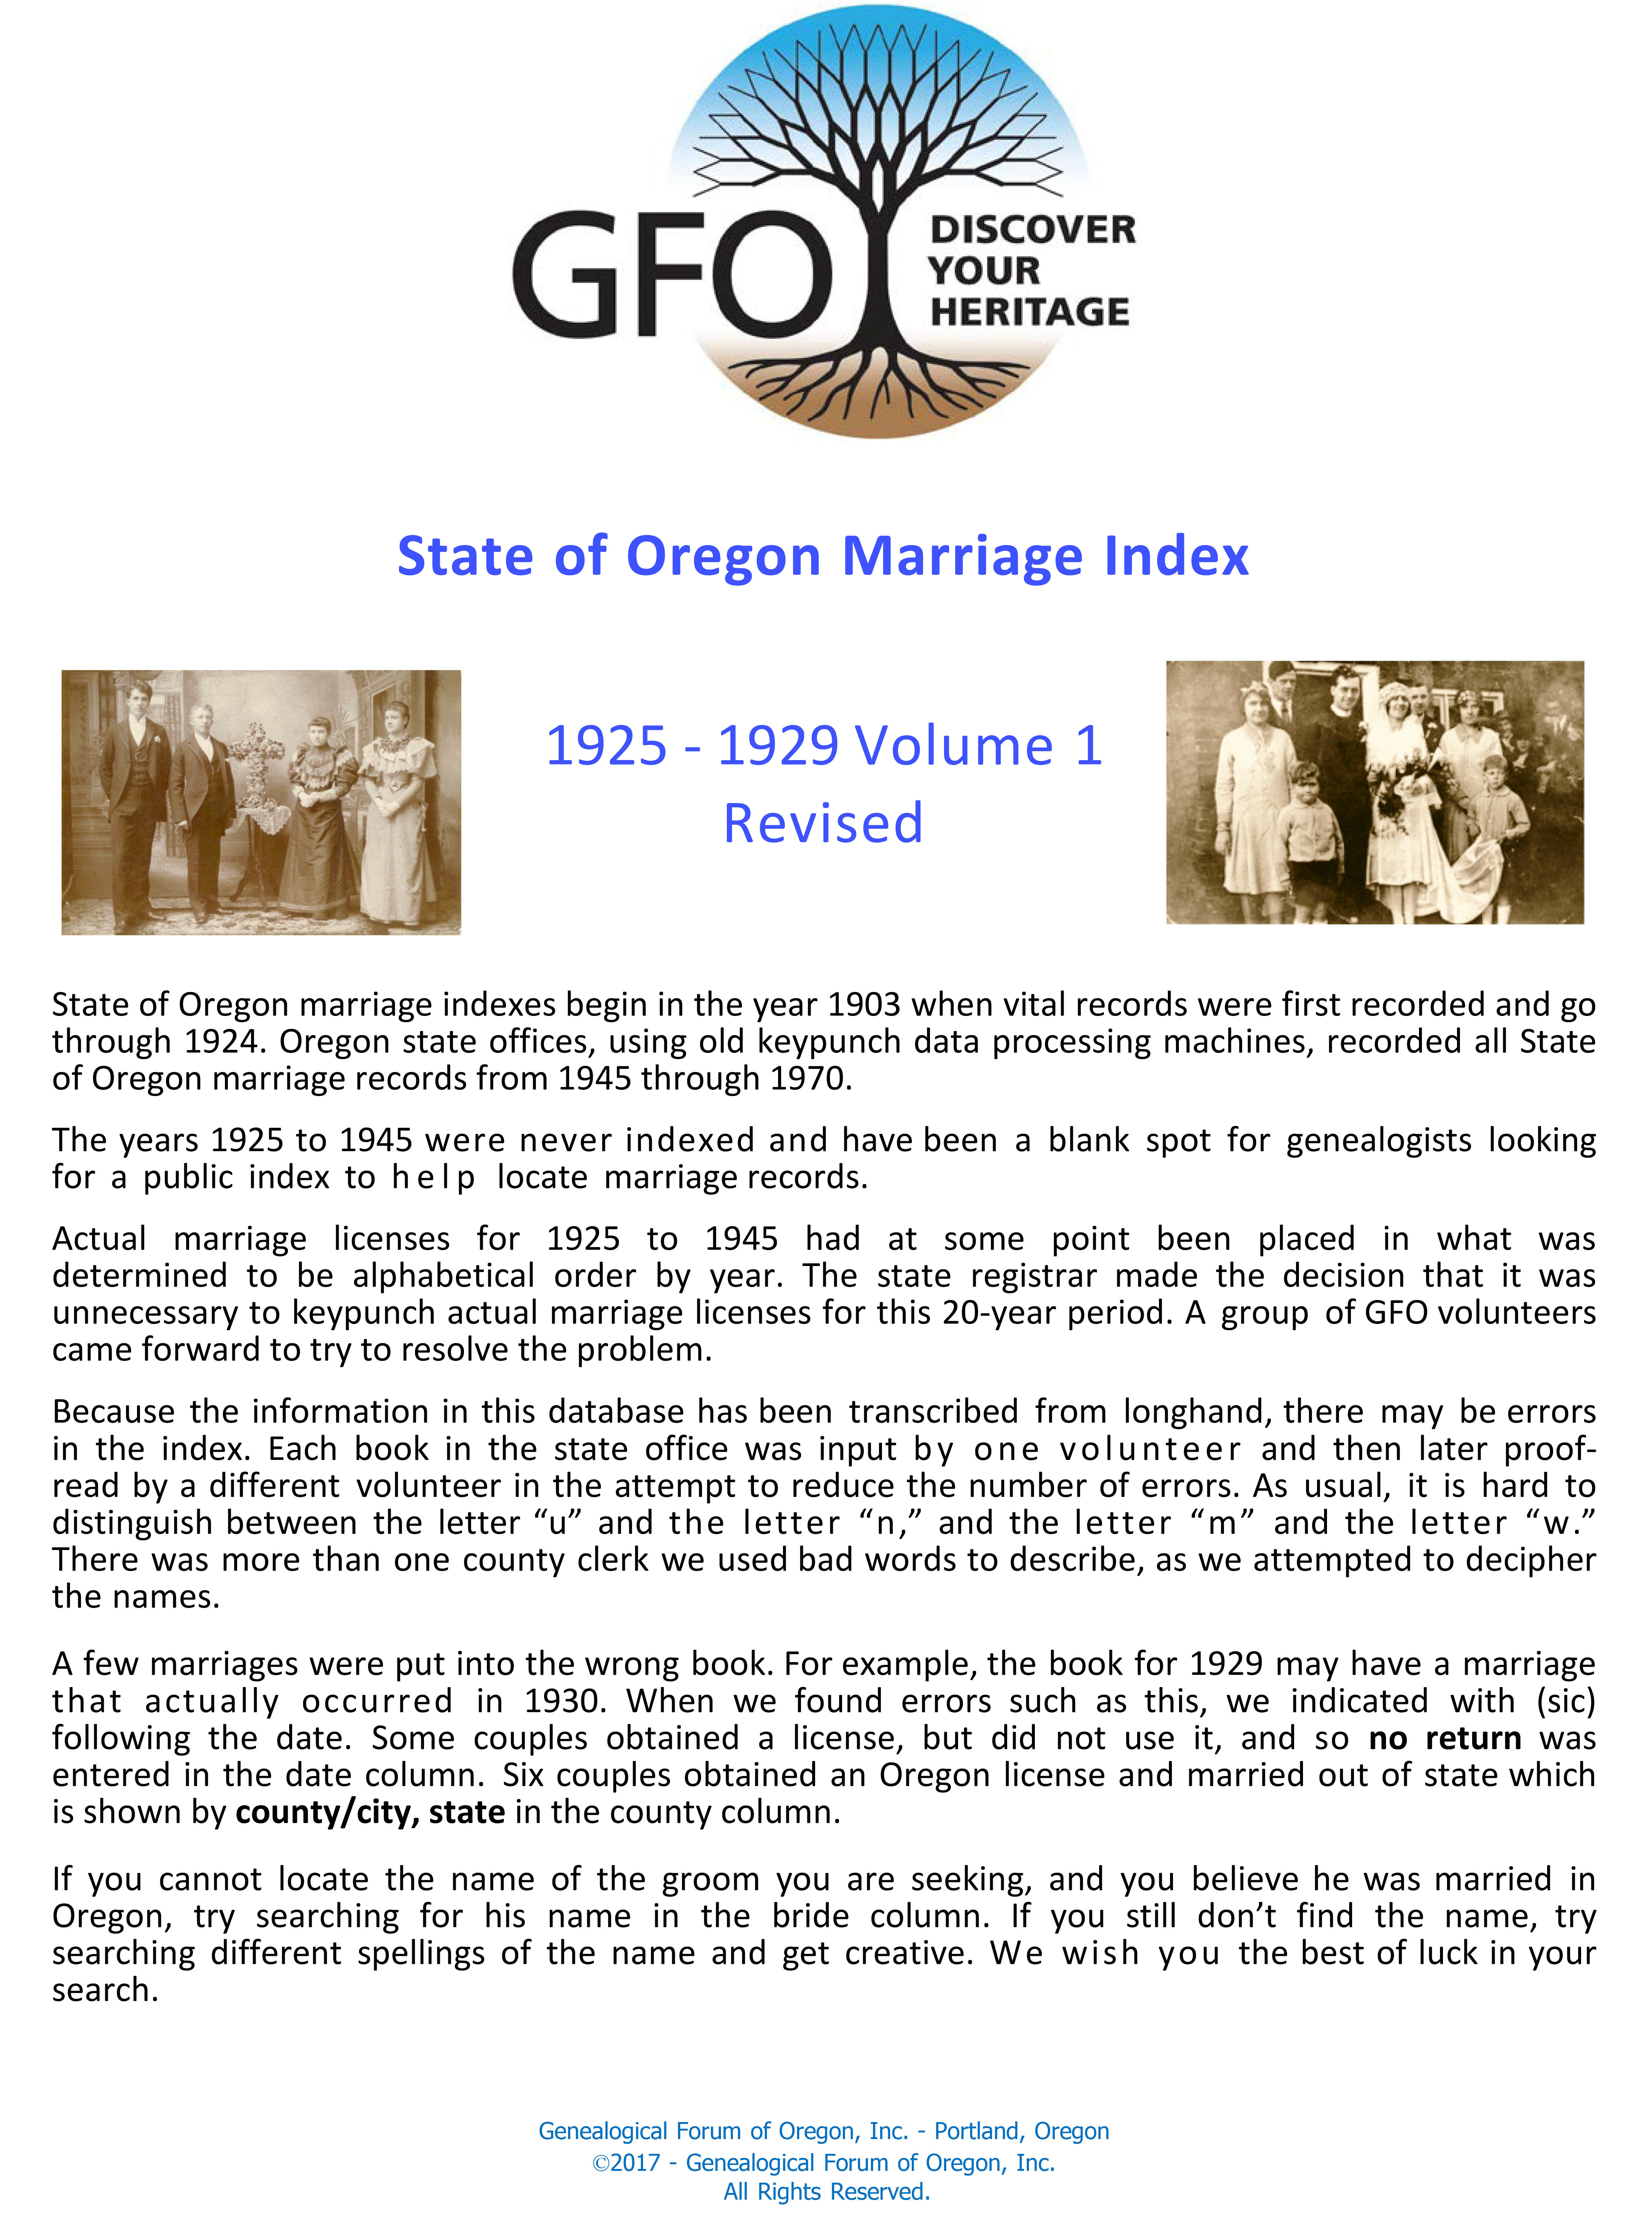 State of Oregon Marriage Index, 1925-1929 (Vol 1 of 4)